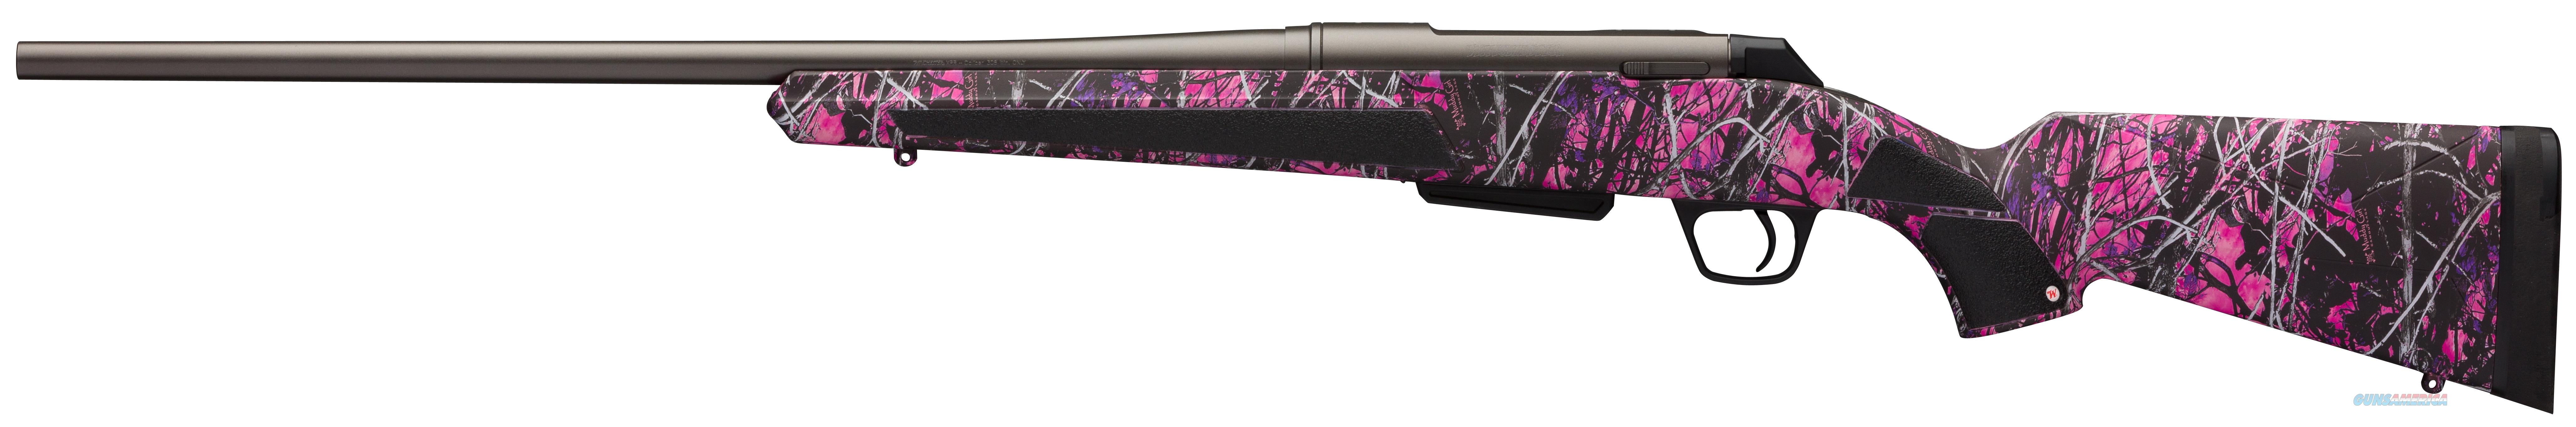 Winchester XPR Muddy Girl 7mm-08  Guns > Rifles > Winchester Rifles - Modern Bolt/Auto/Single > Autoloaders